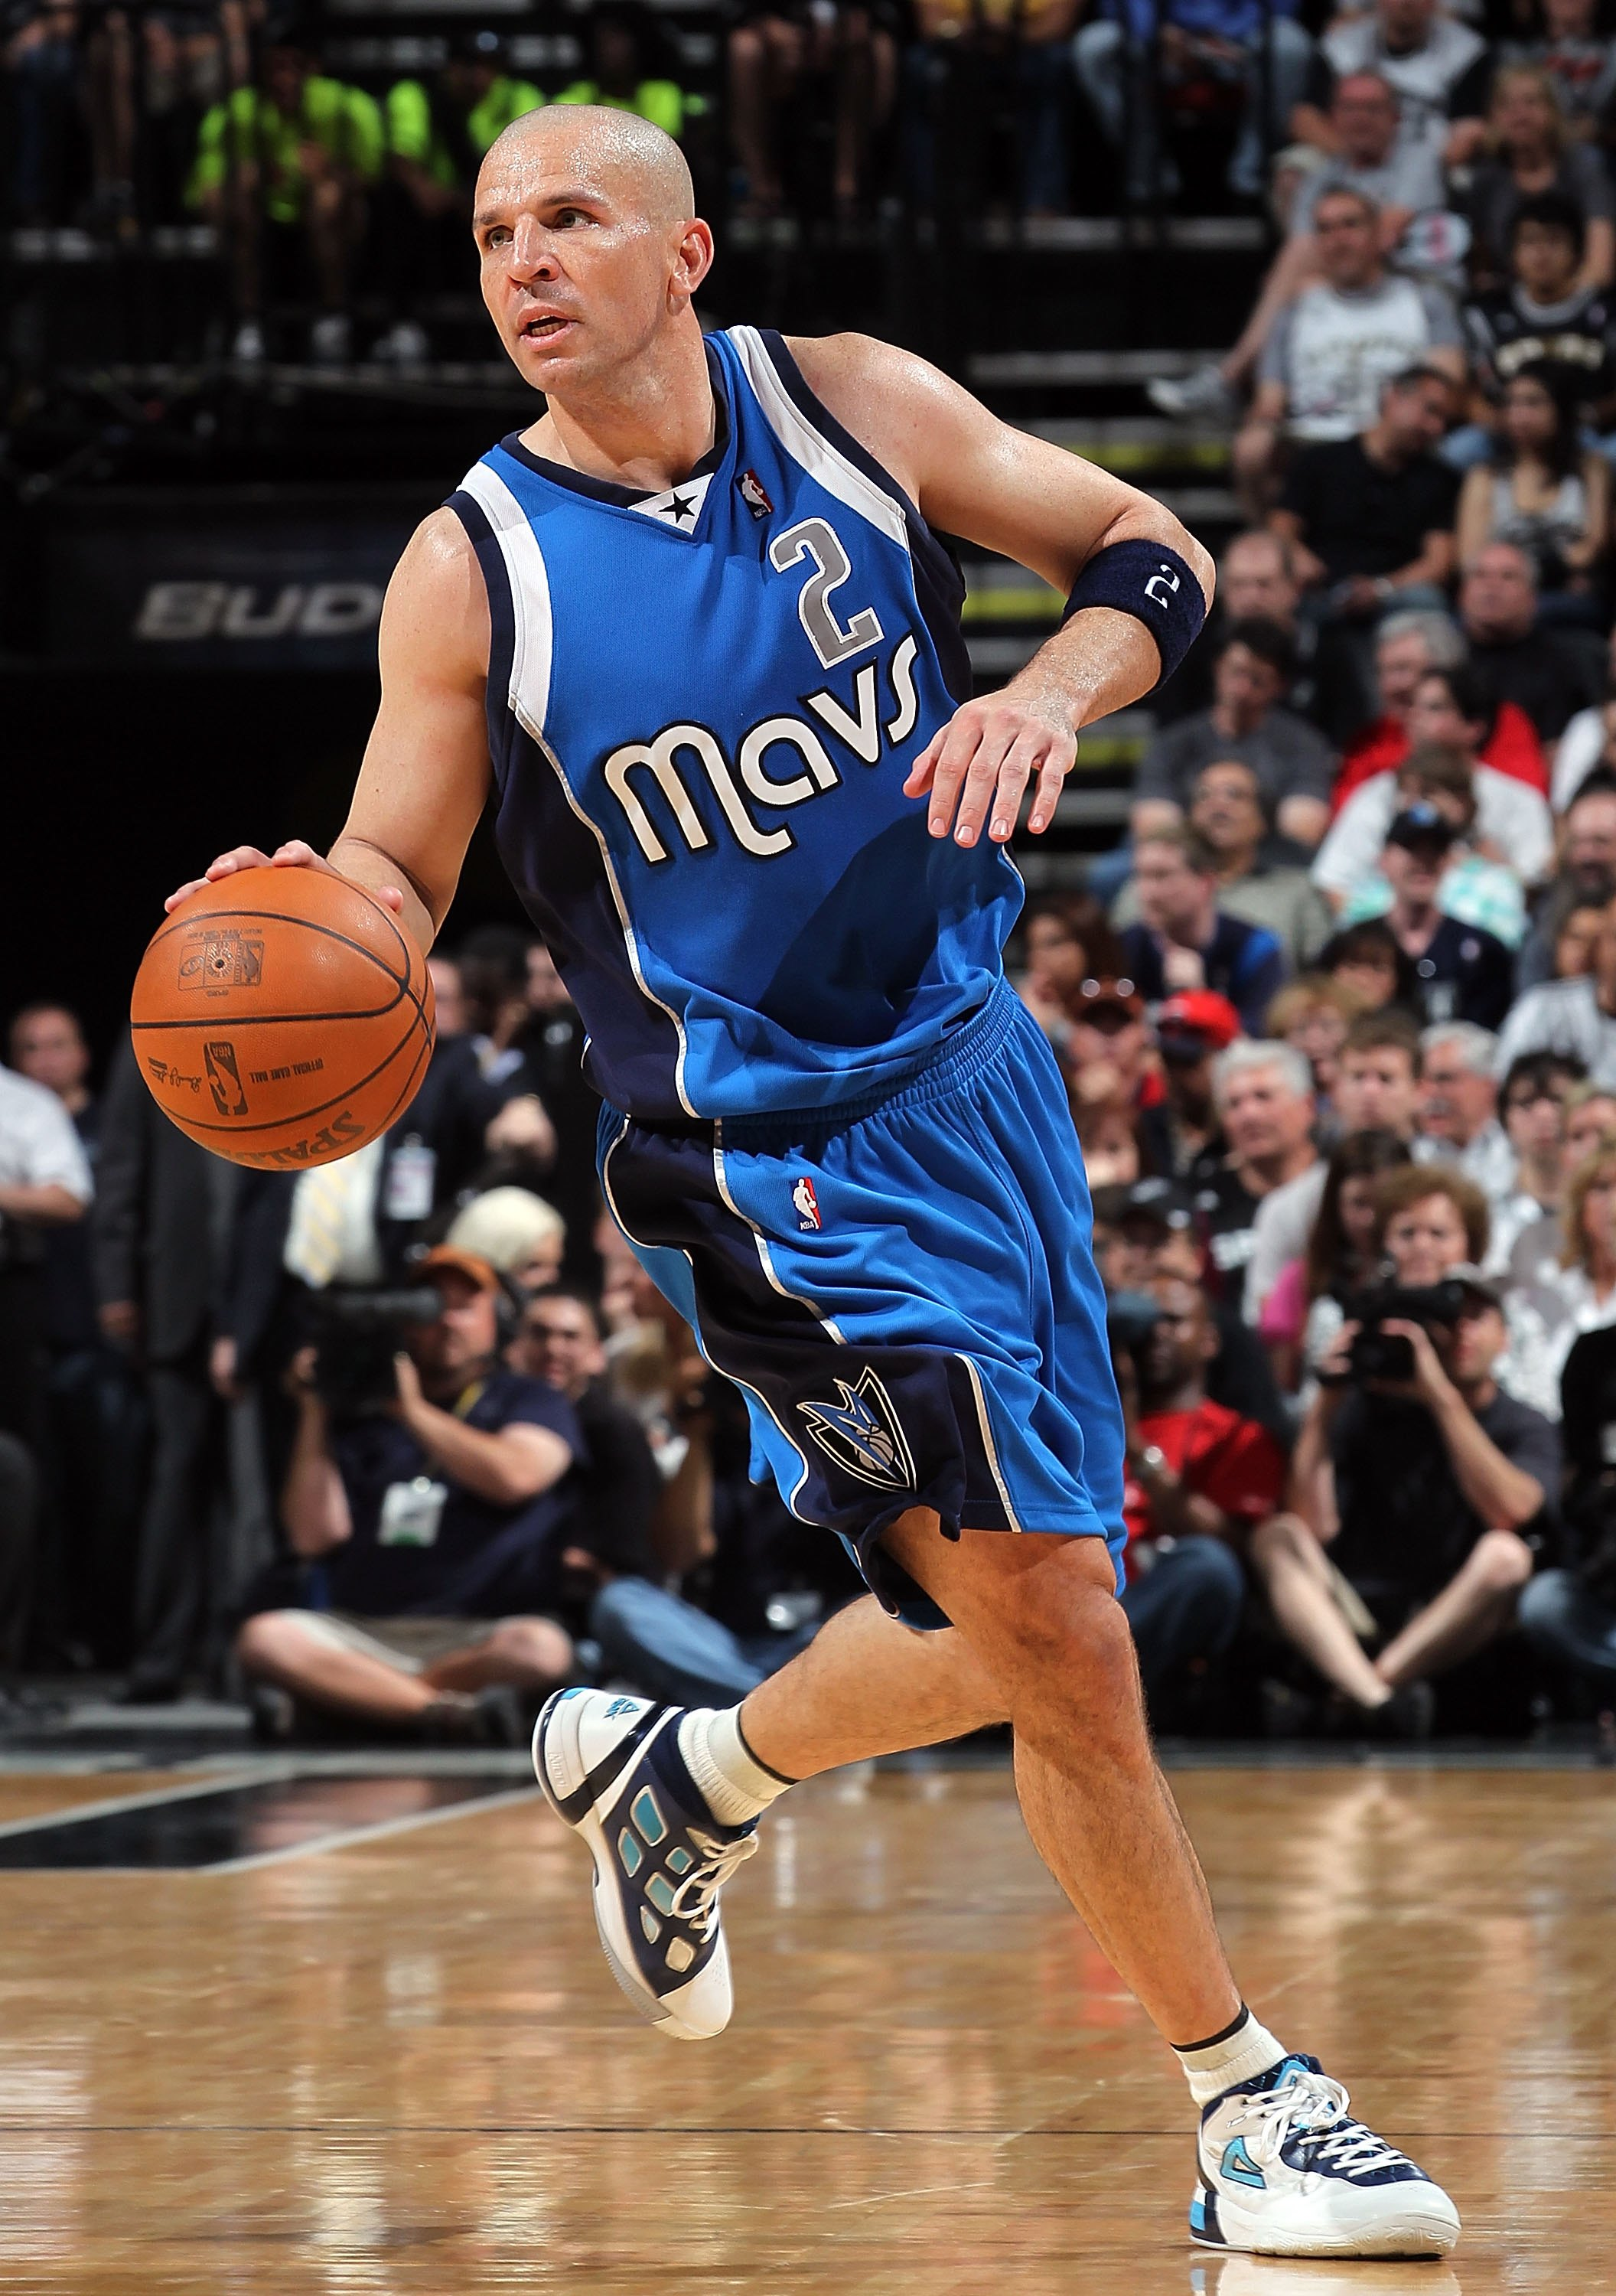 SAN ANTONIO - APRIL 25:  Jason Kidd #2 of the Dallas Mavericks in Game Four of the Western Conference Quarterfinals during the 2010 NBA Playoffs at AT&T Center on April 25, 2010 in San Antonio, Texas. NOTE TO USER: User expressly acknowledges and agrees t